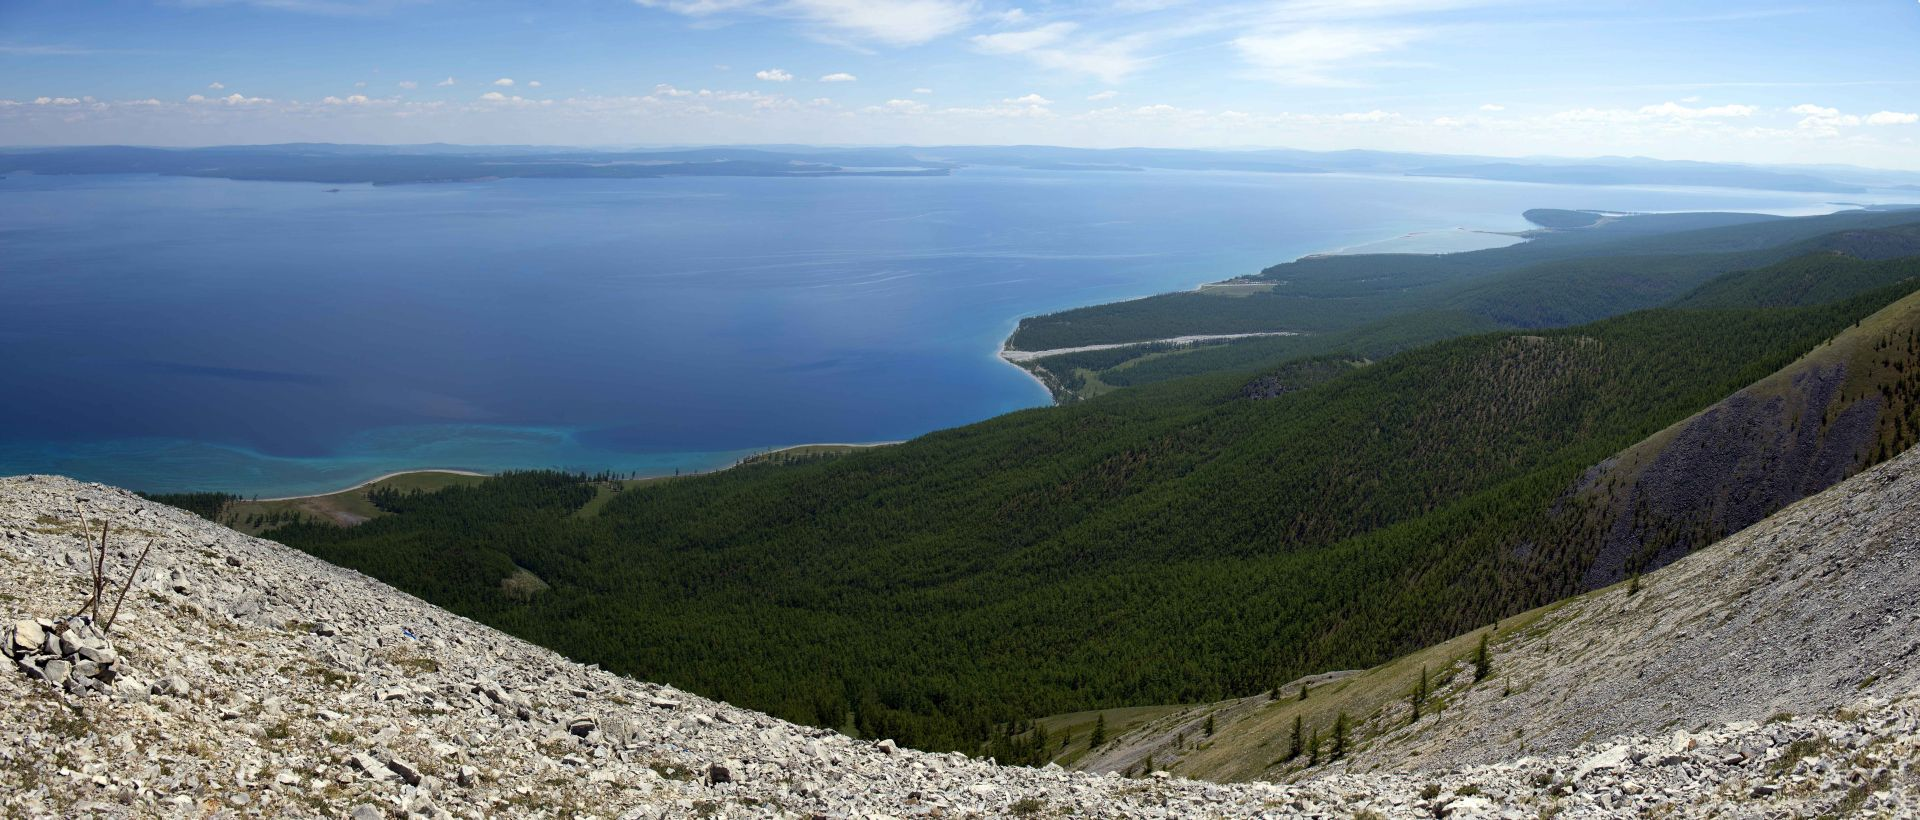 by west shore of Khuvsgul lake